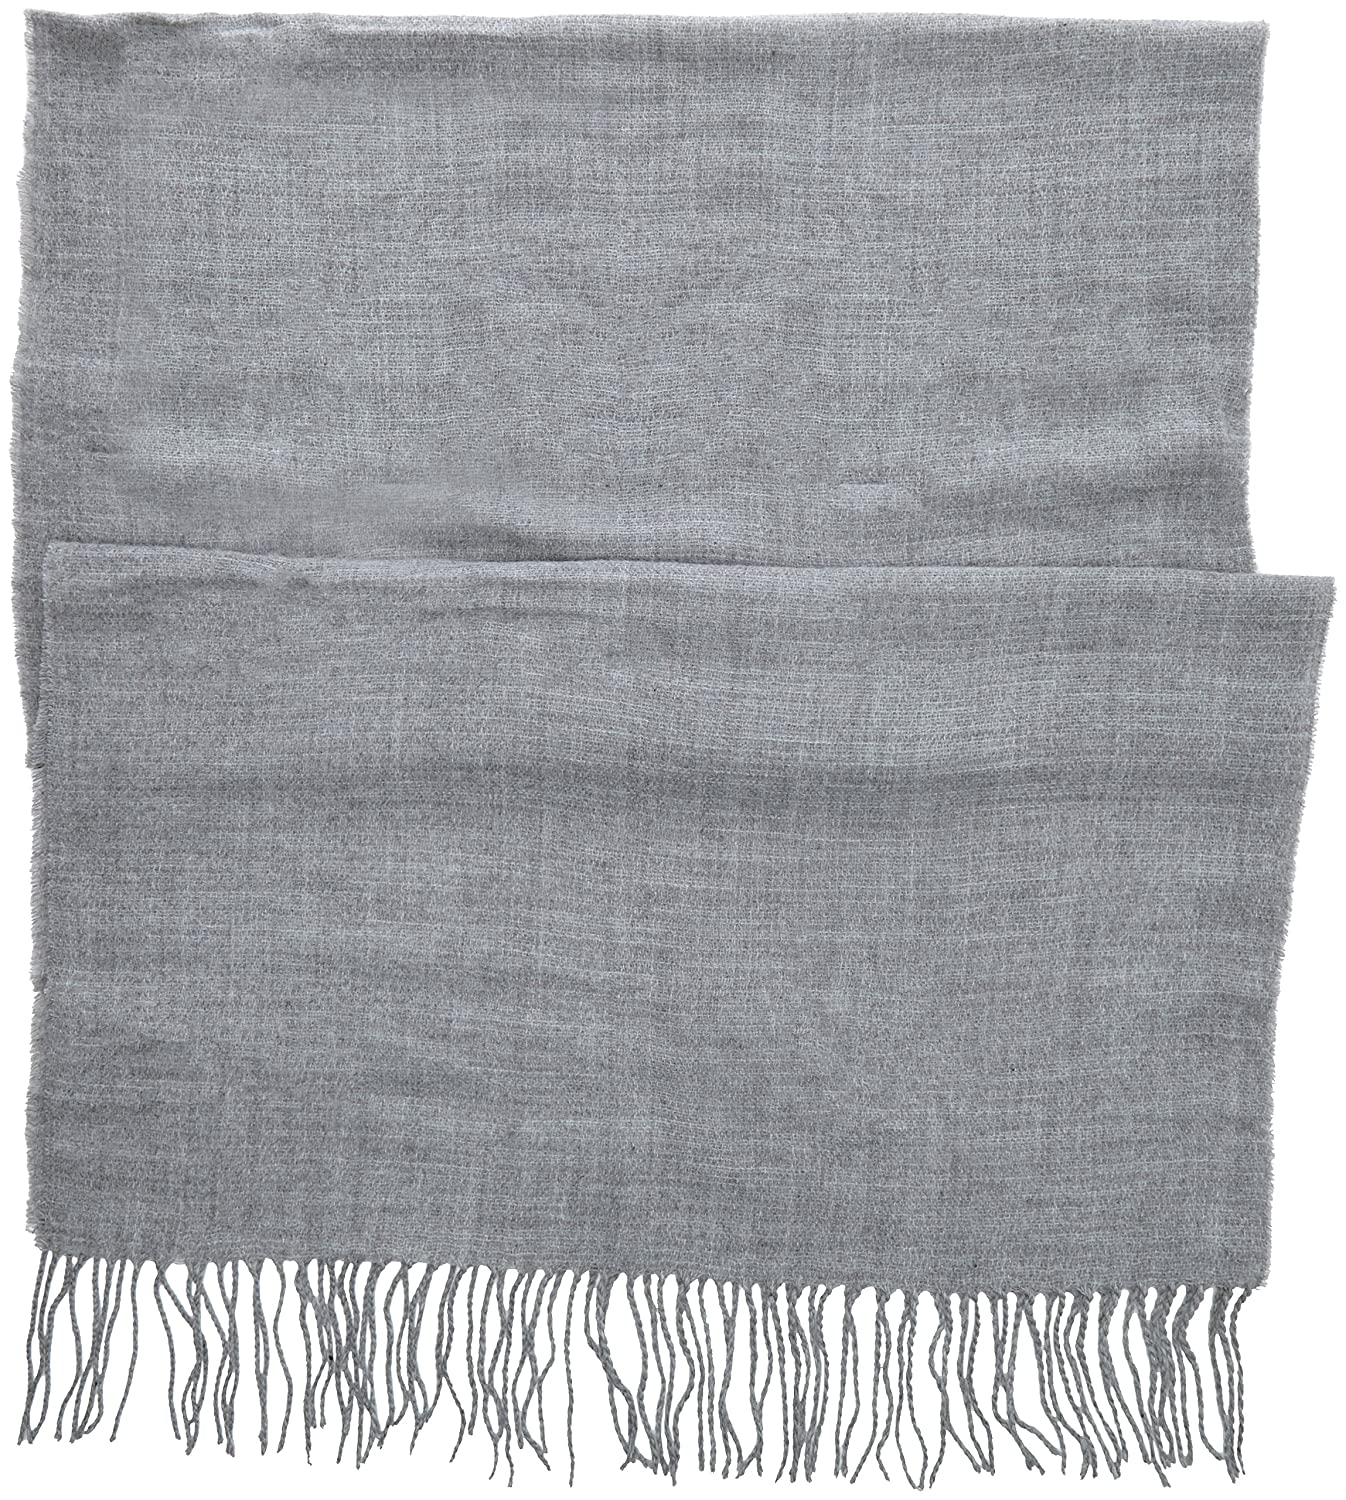 Womens Fluffy Pln Scarf, Grey, One Size (Manufacturer Size: 1) Dorothy Perkins